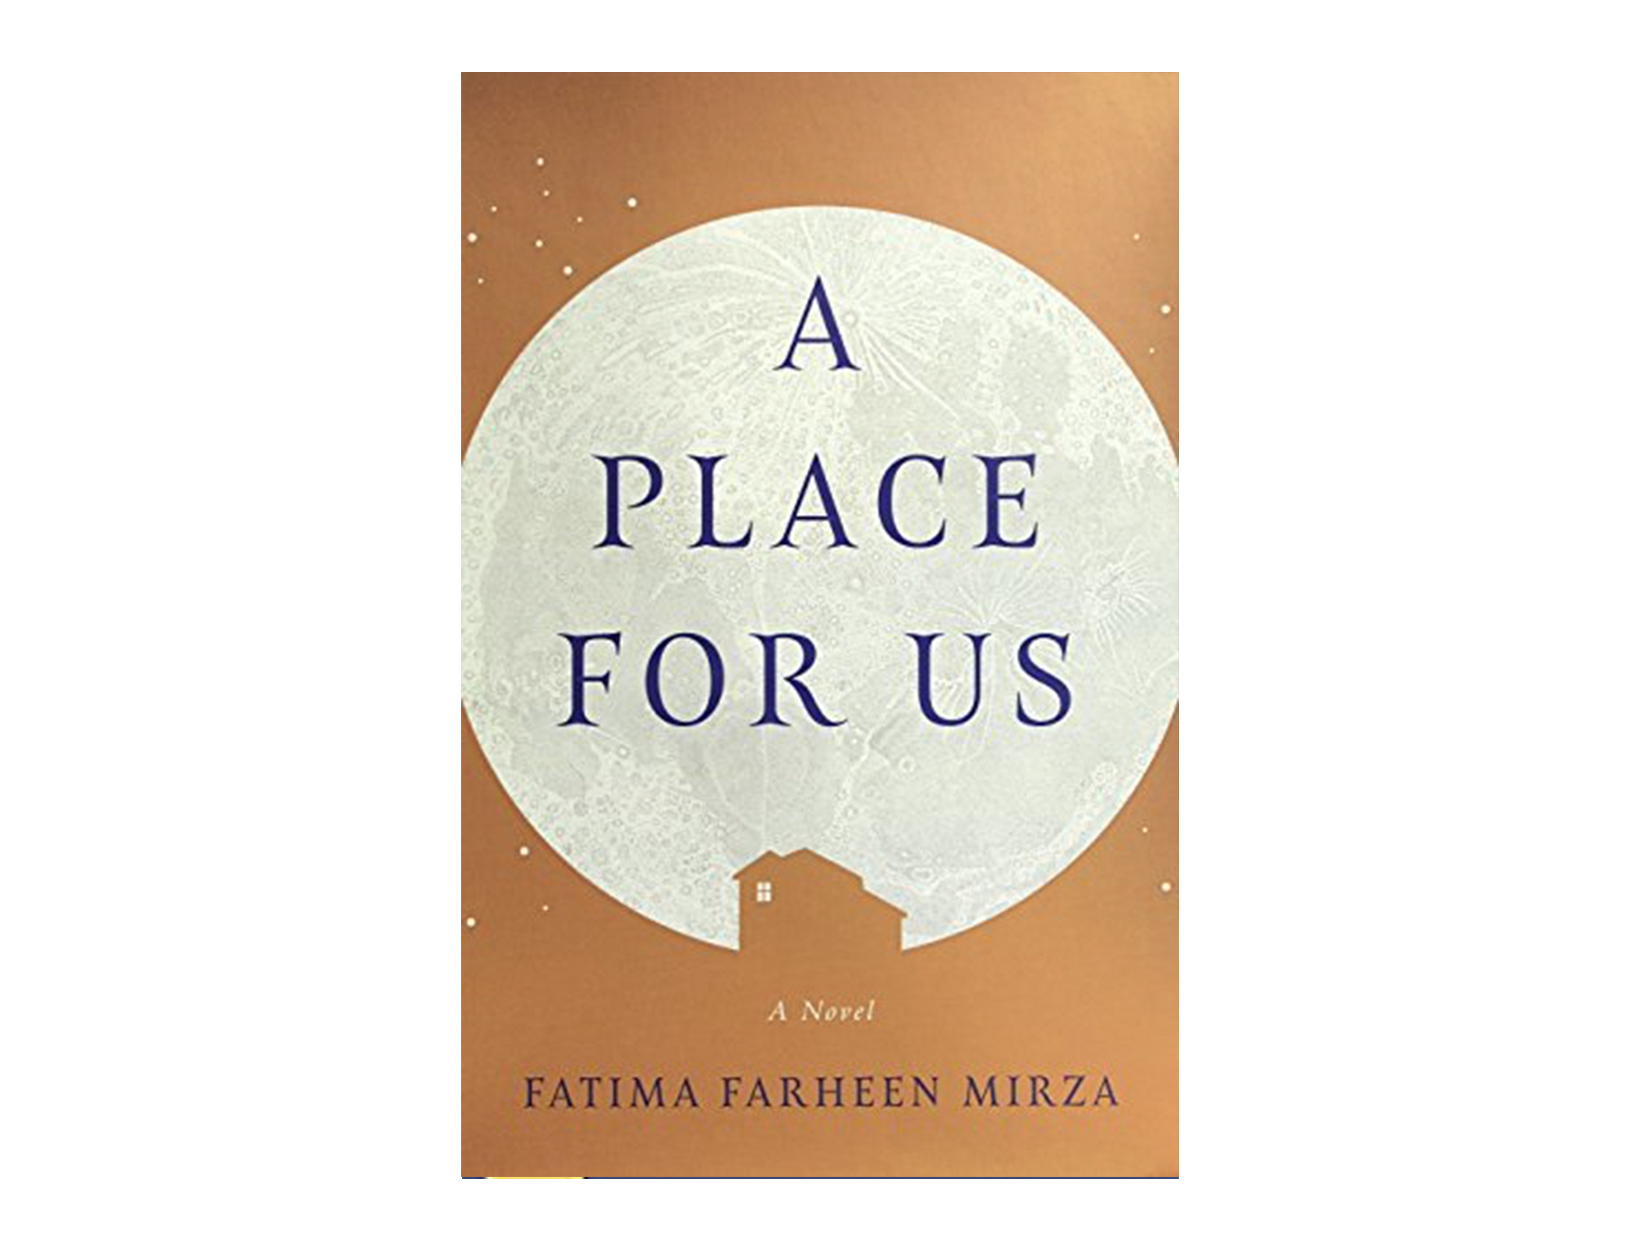 <em>A Place for Us</em> by Fatima Farheen Mirza